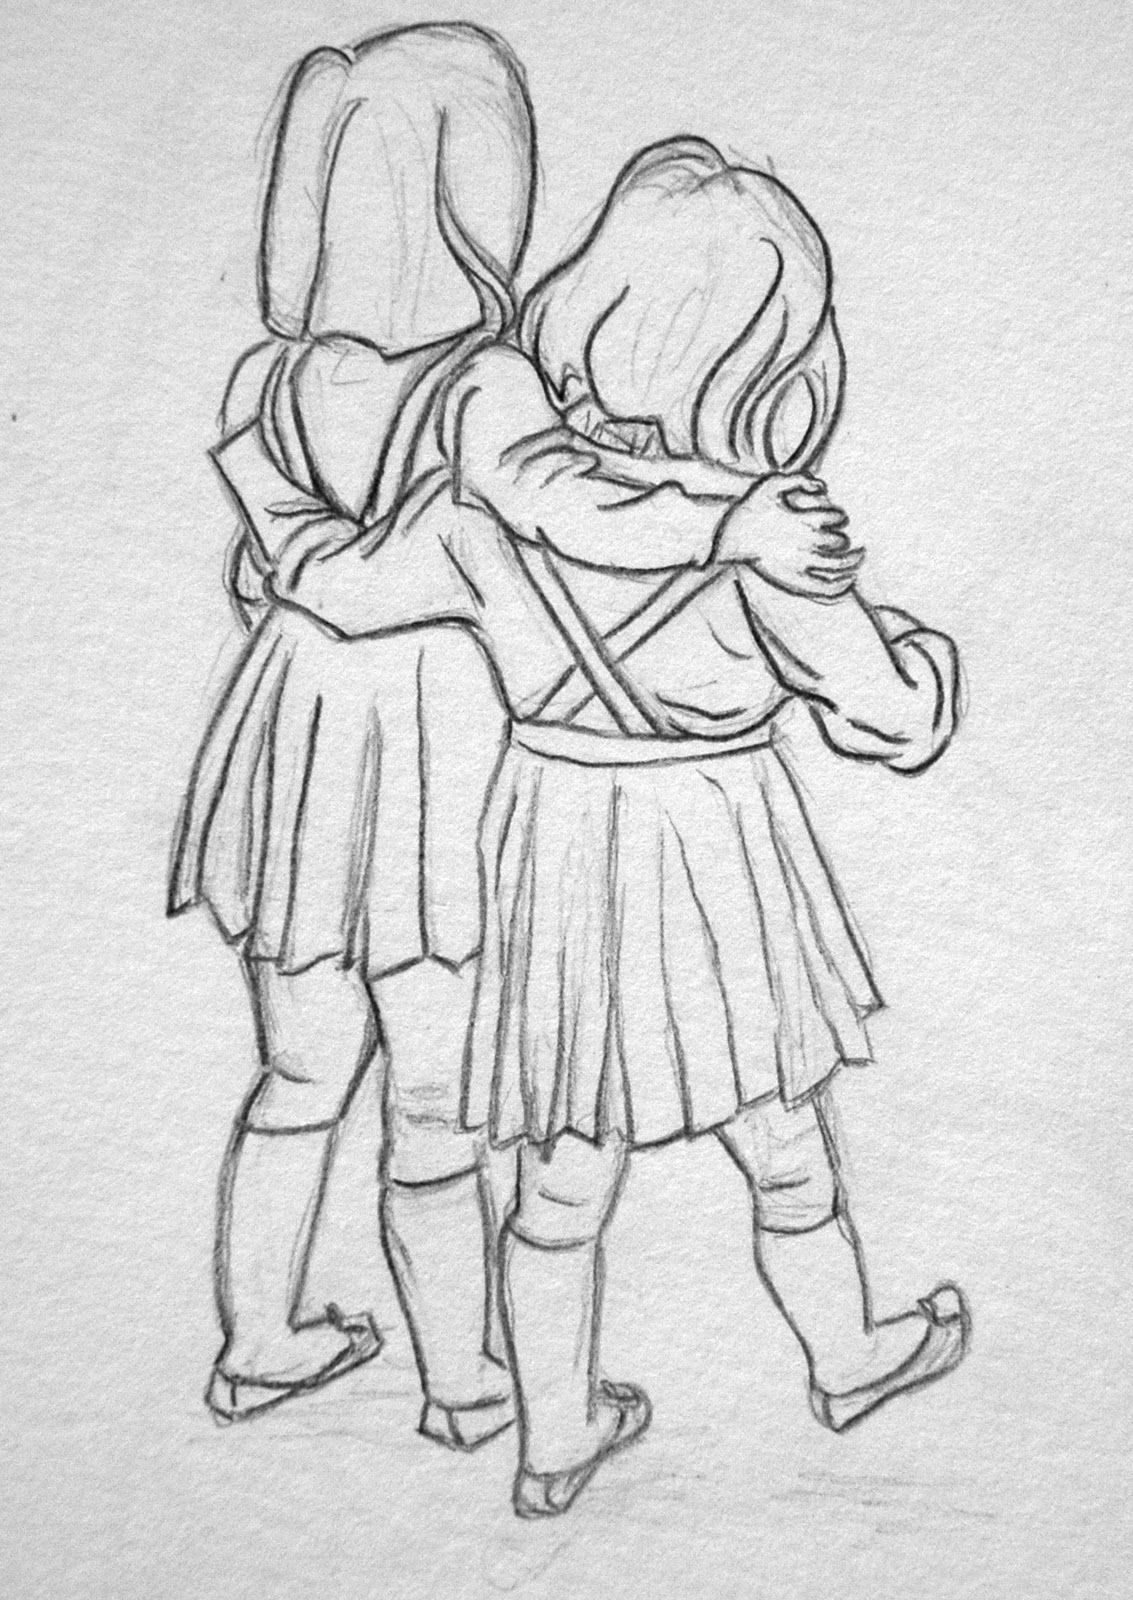 Sisters Pencil Sketch Sketches Drawings Drawings Of Friends